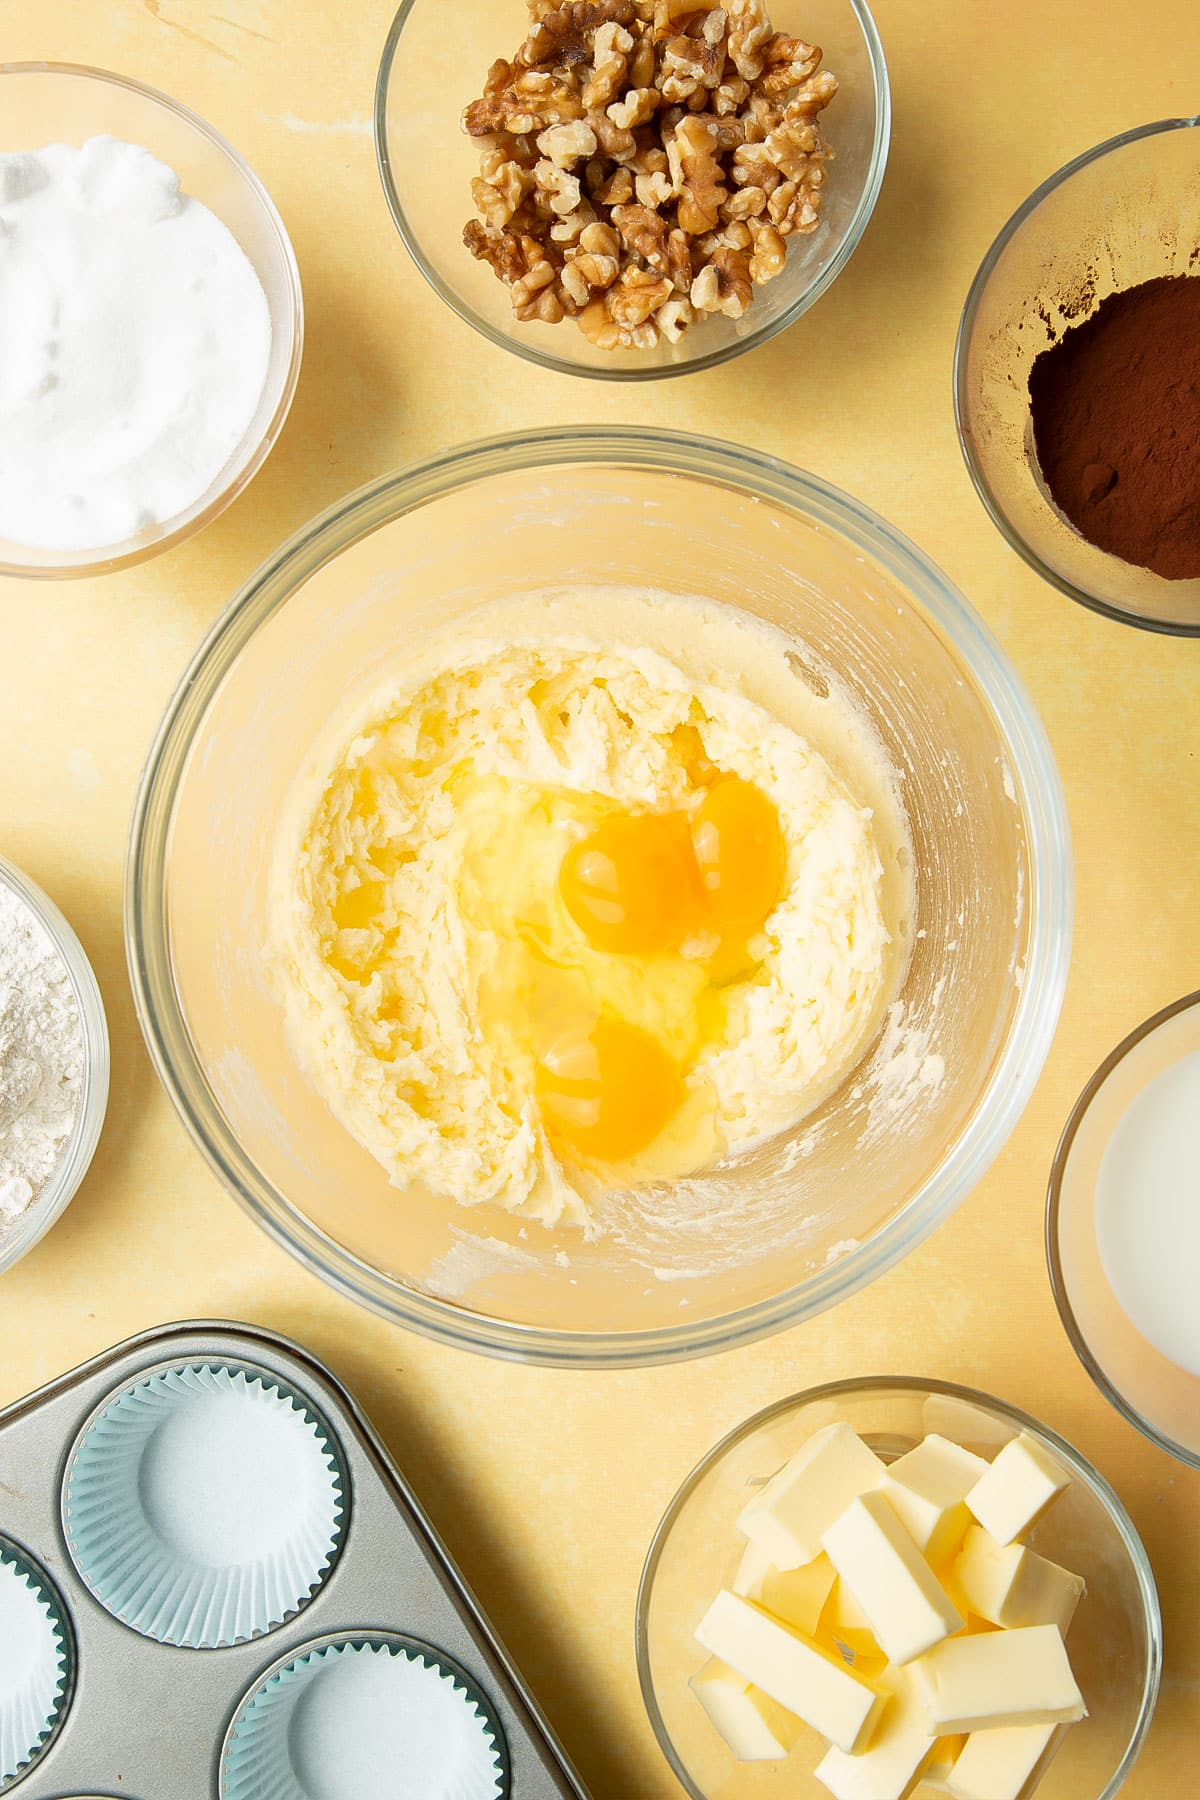 Butter and sugar, creamed together in a glass mixing bowl and topped with eggs. Ingredients for chocolate walnut cupcakes surround the bowl.